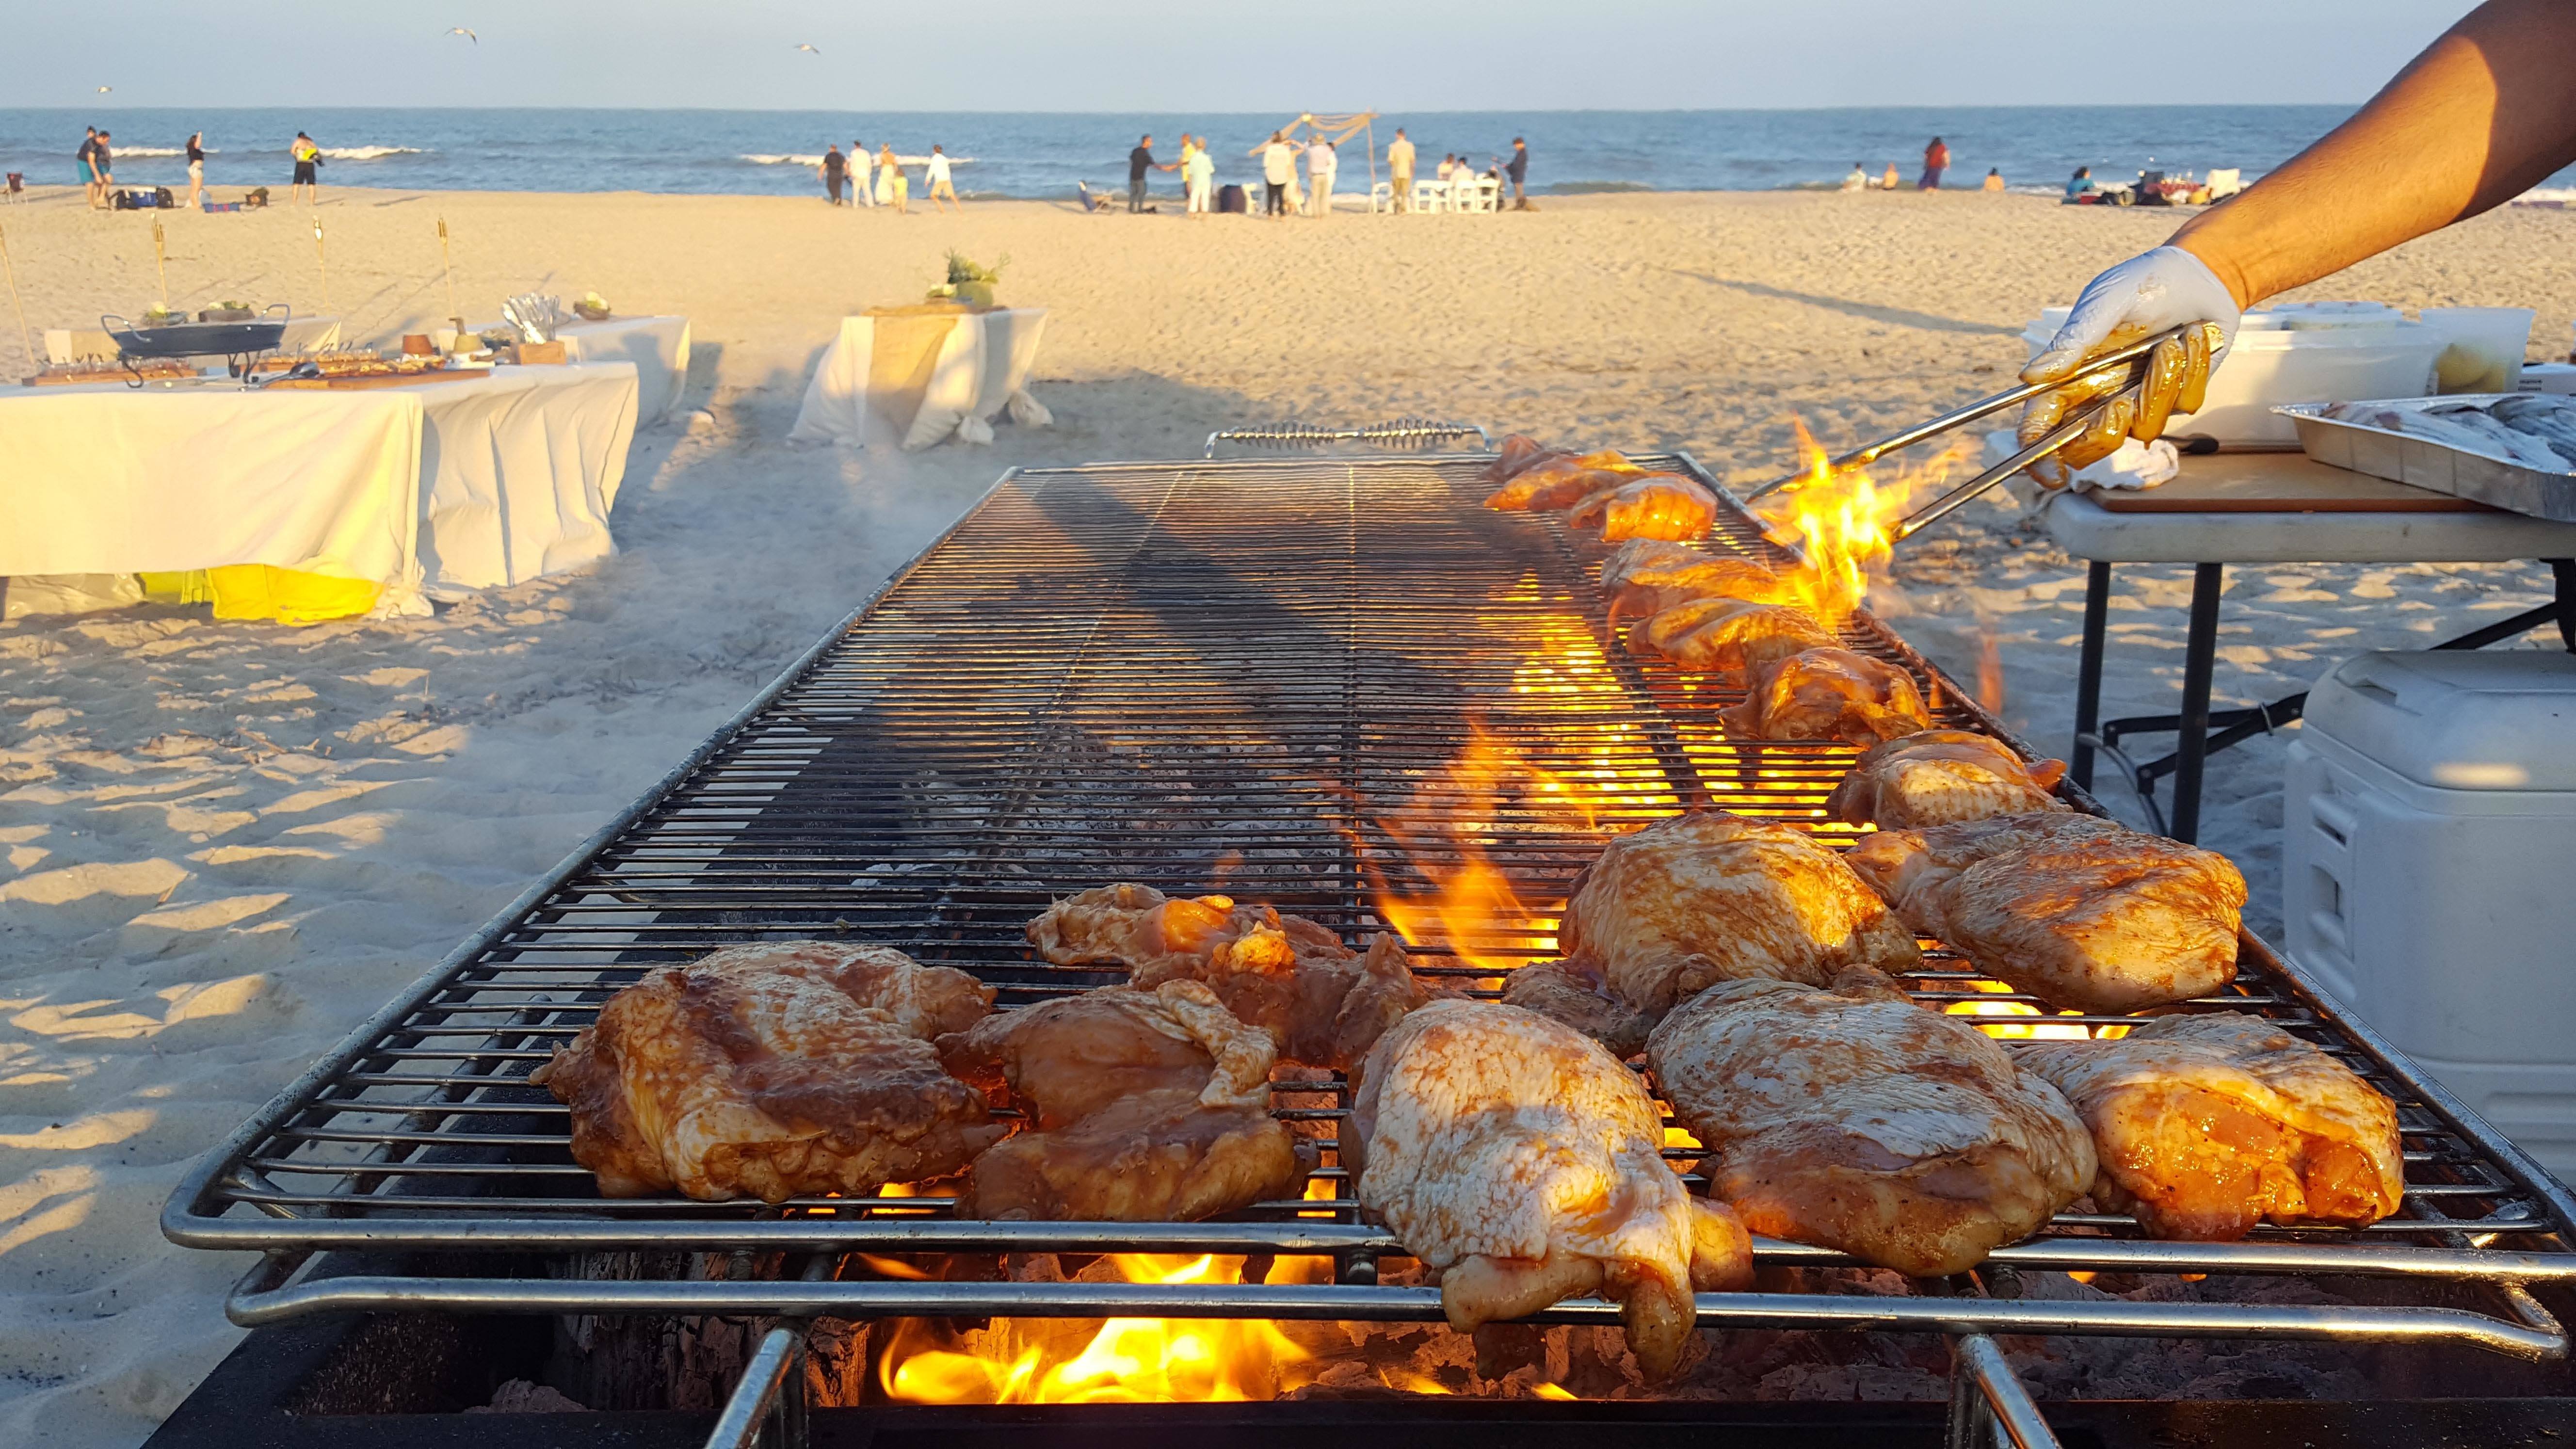 Grilled Chicken on the beach